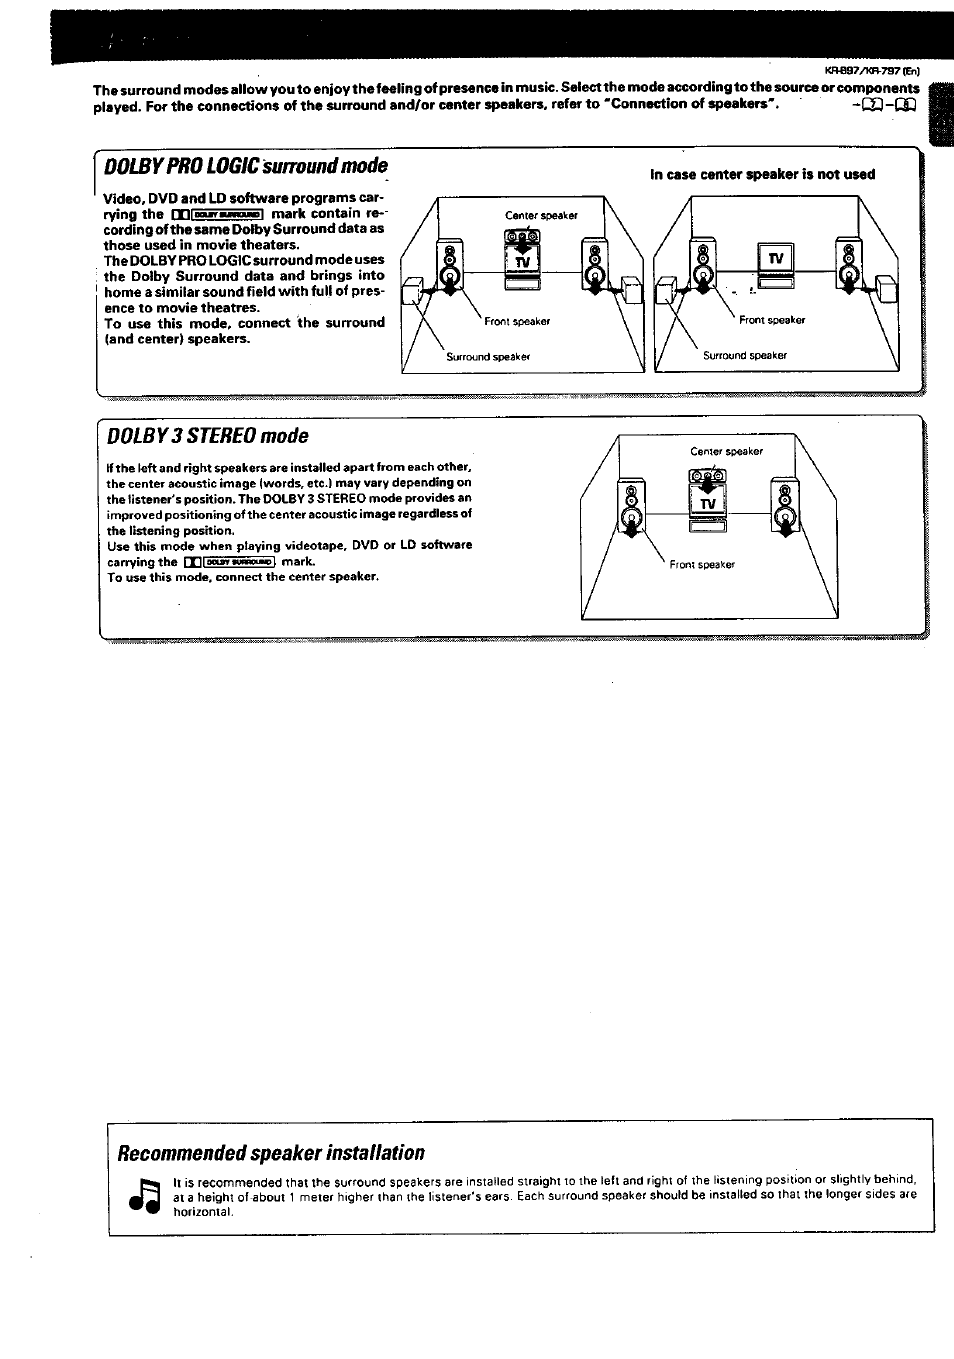 Doiypro Logic Surround Mode Dolby3 Stereo Recommended Kenwood Wiring Diagram For Sound Speaker Installation Kr 897 User Manual Page 23 32